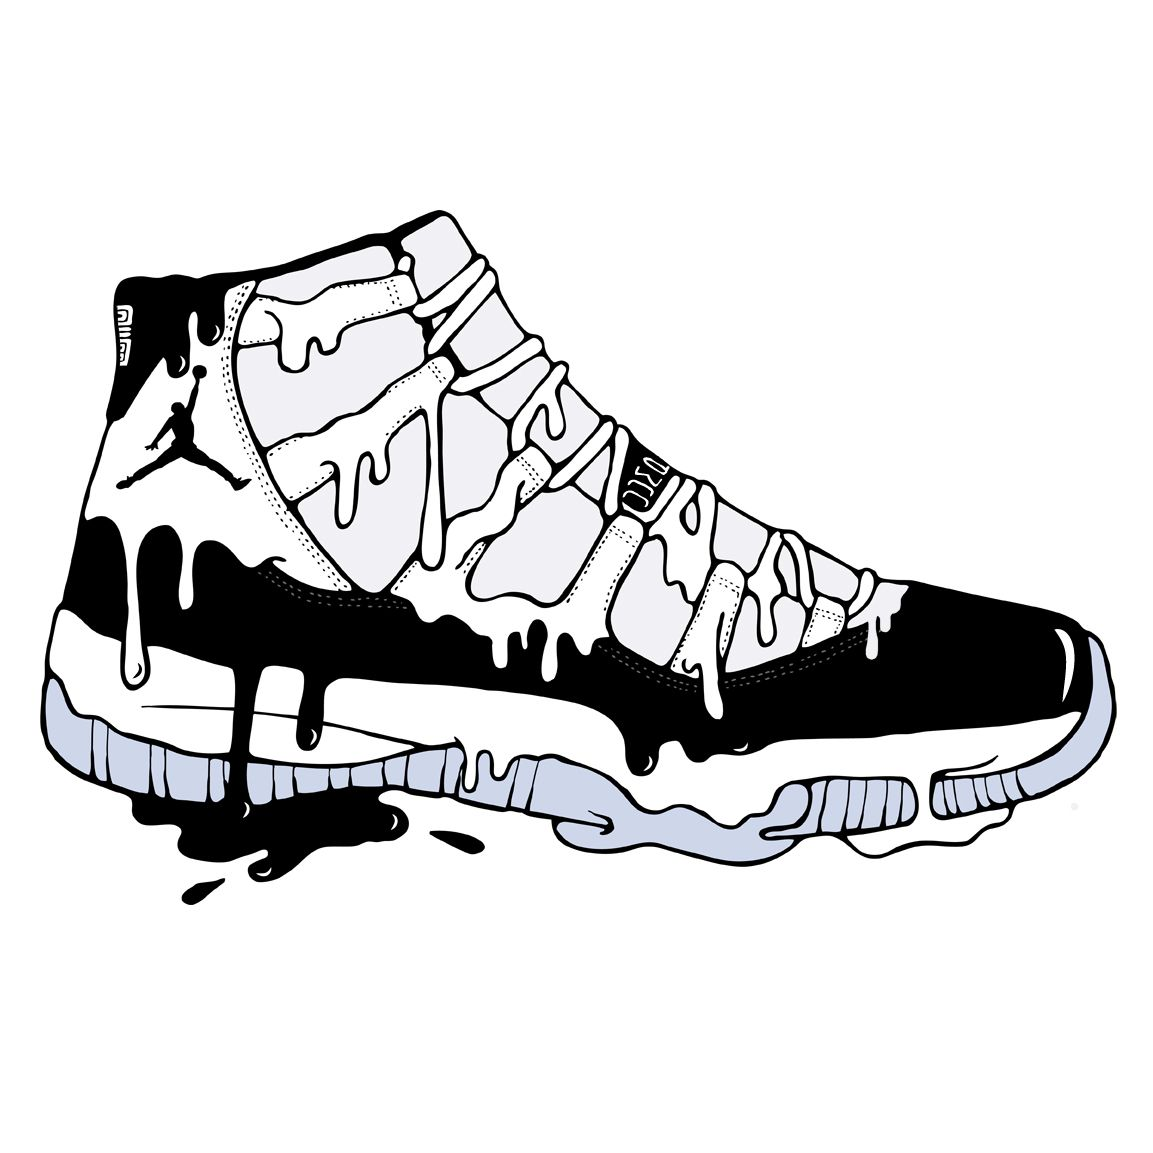 Air Jordan 11 'Columbia' by BBoyKai91 on DeviantArt | Illustration |  Pinterest | Air jordan, Columbia and deviantART